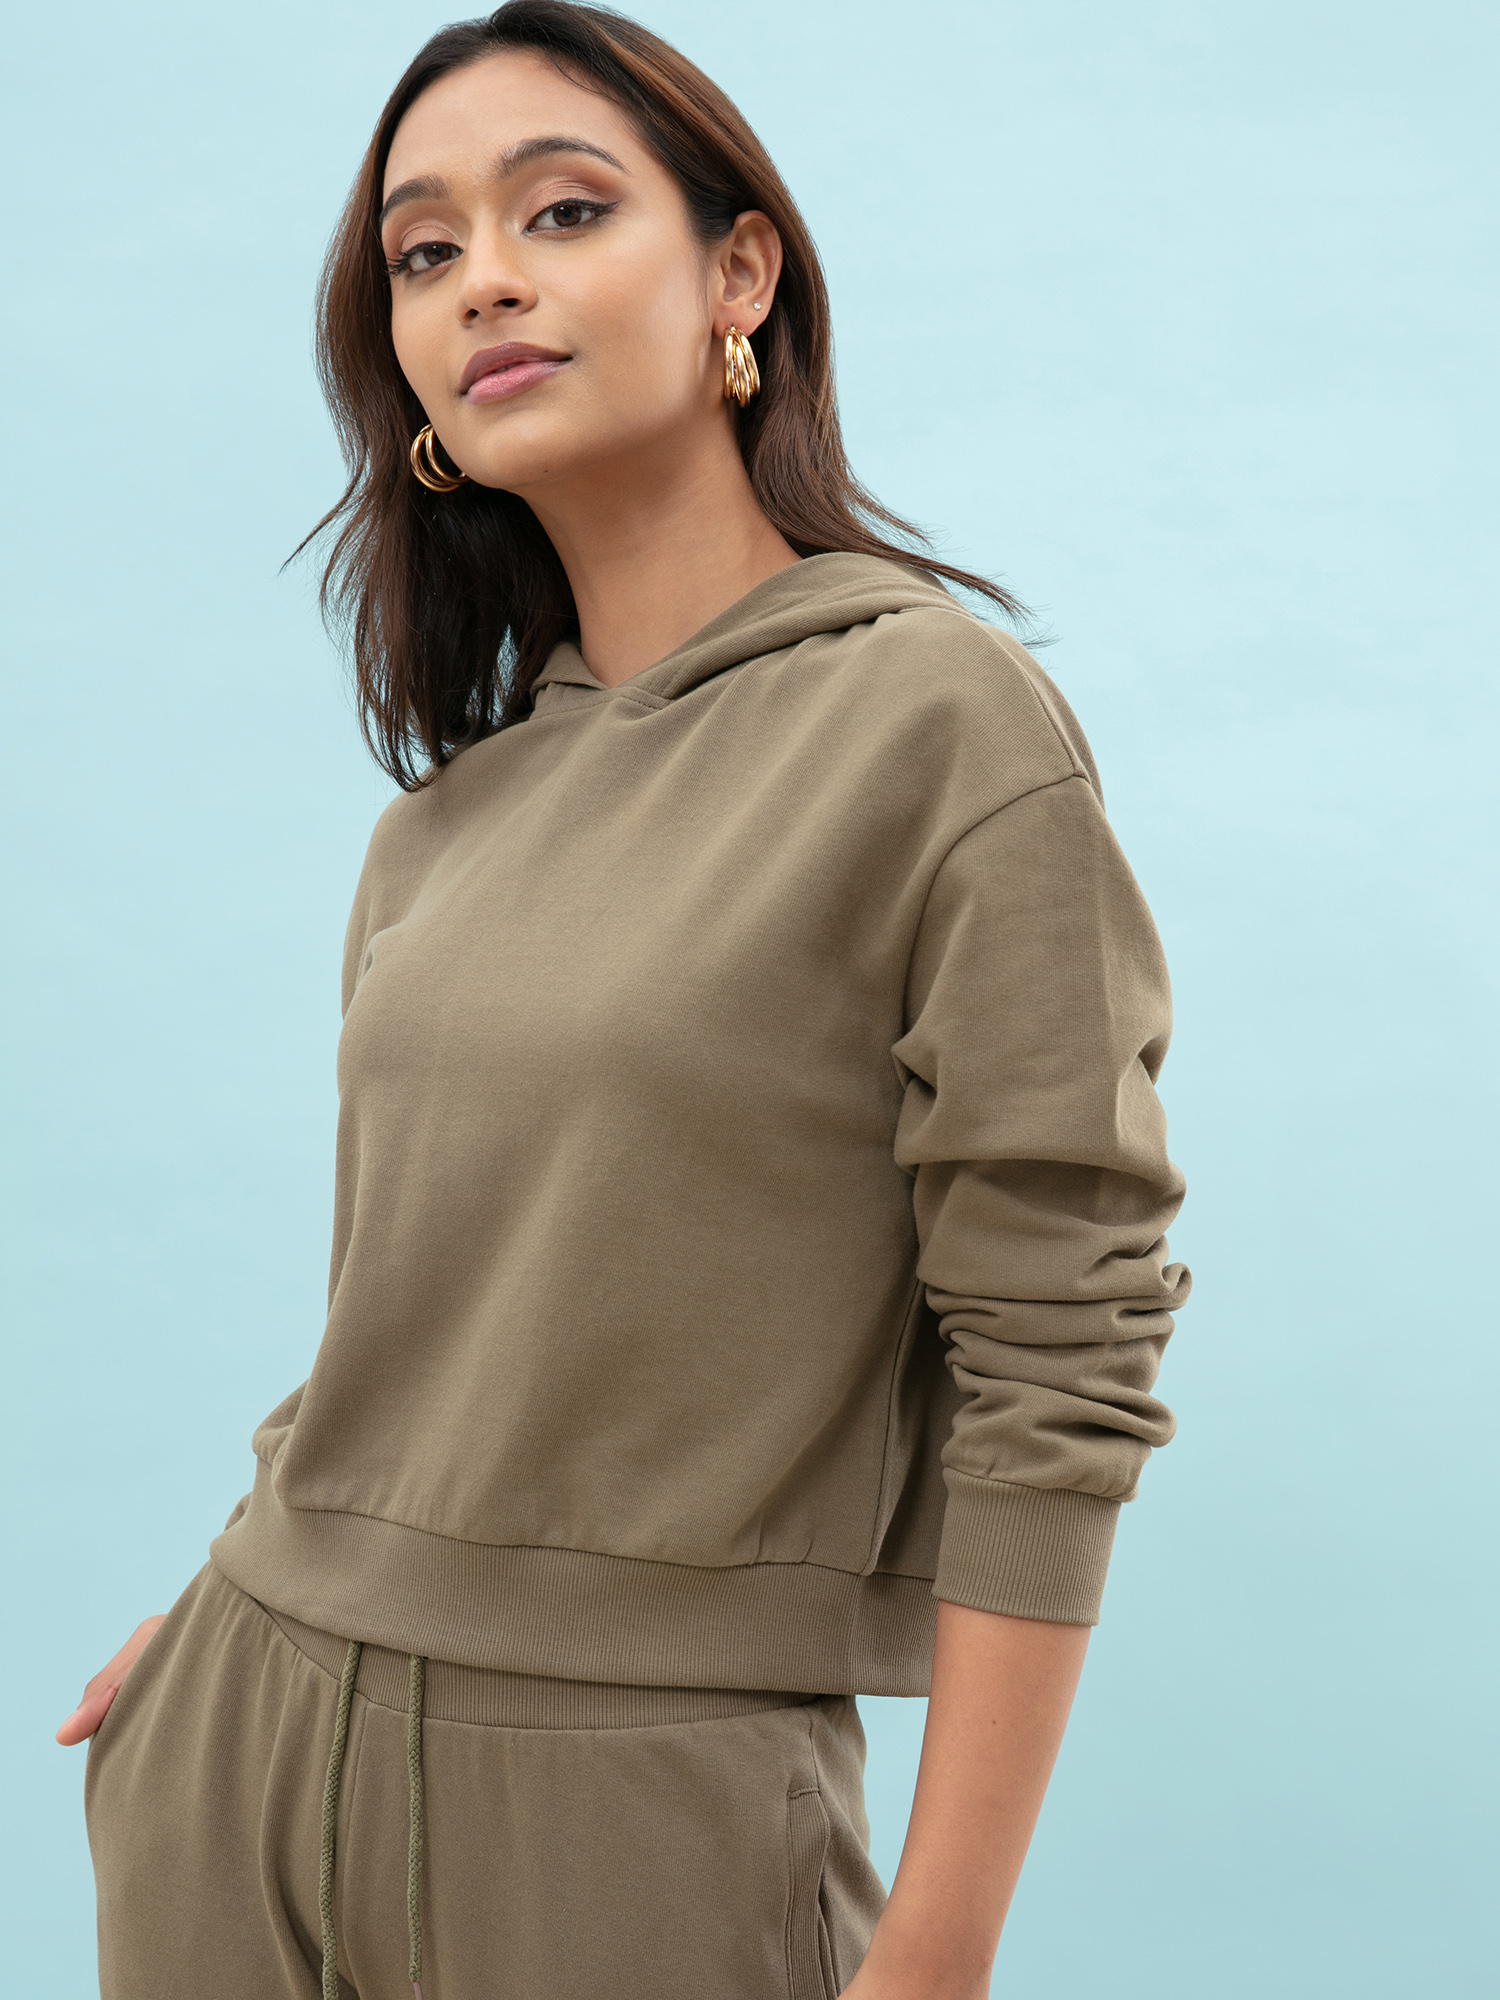 Tops-The Relaxed Olive Green Hoodie4